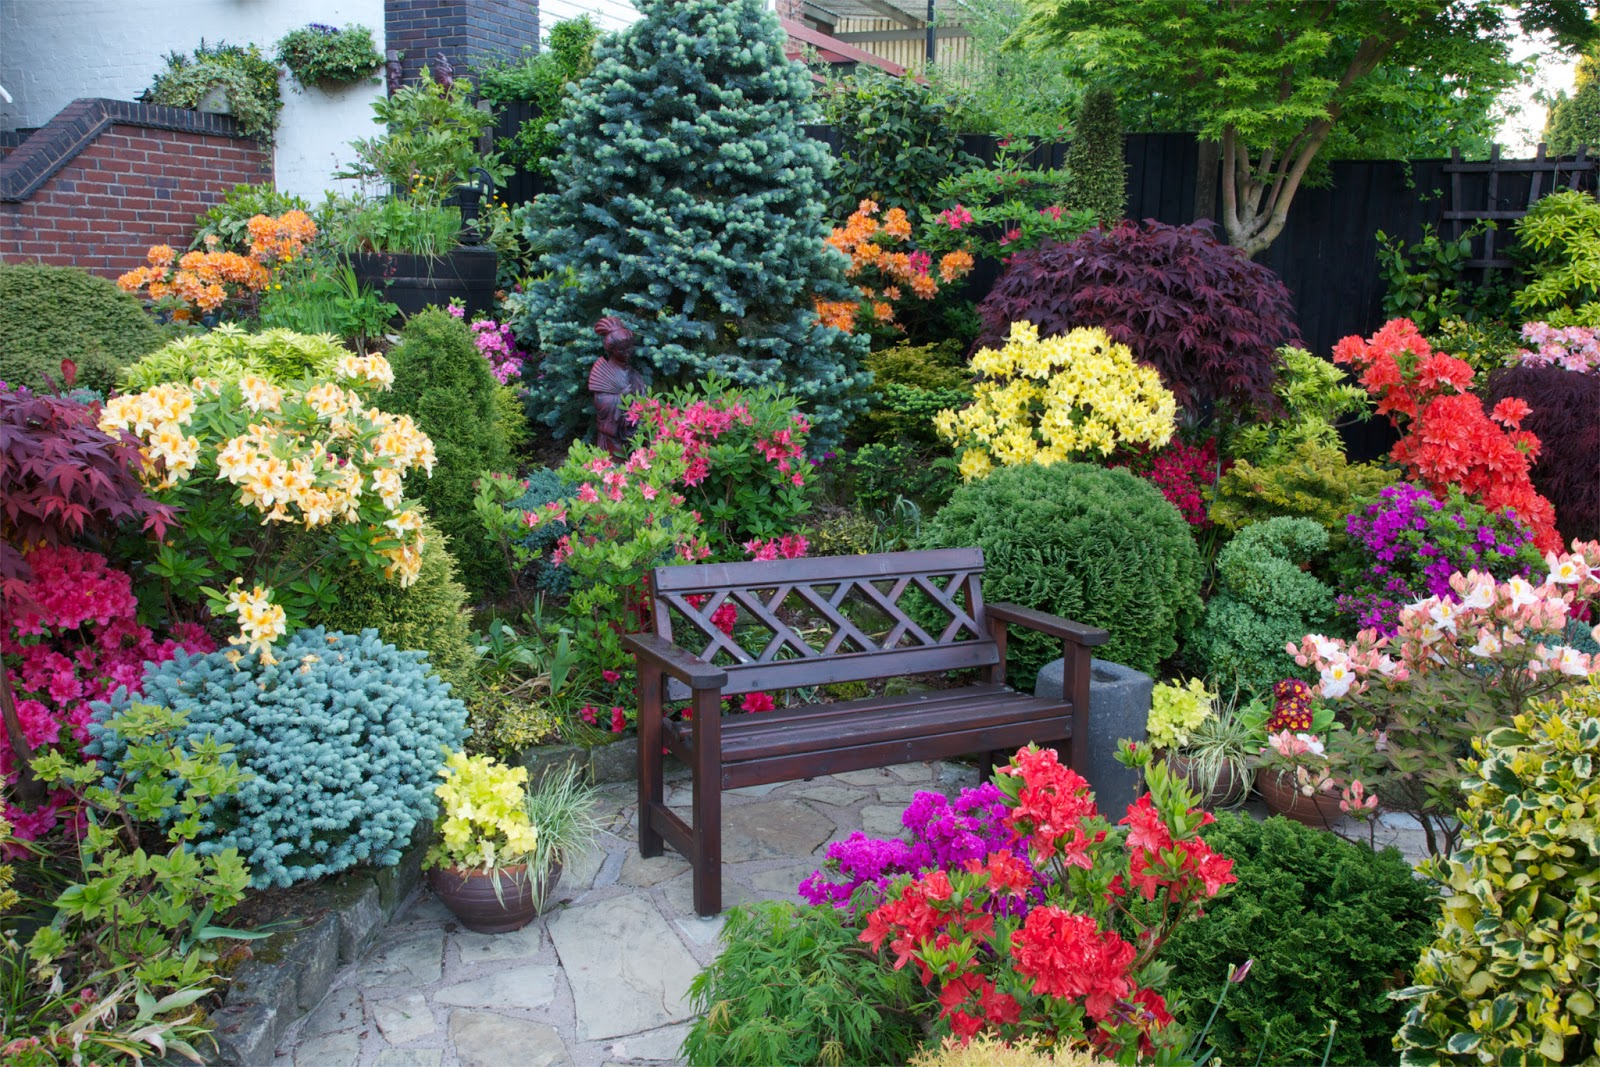 Drelis gardens four seasons garden the most beautiful for Best home garden ideas